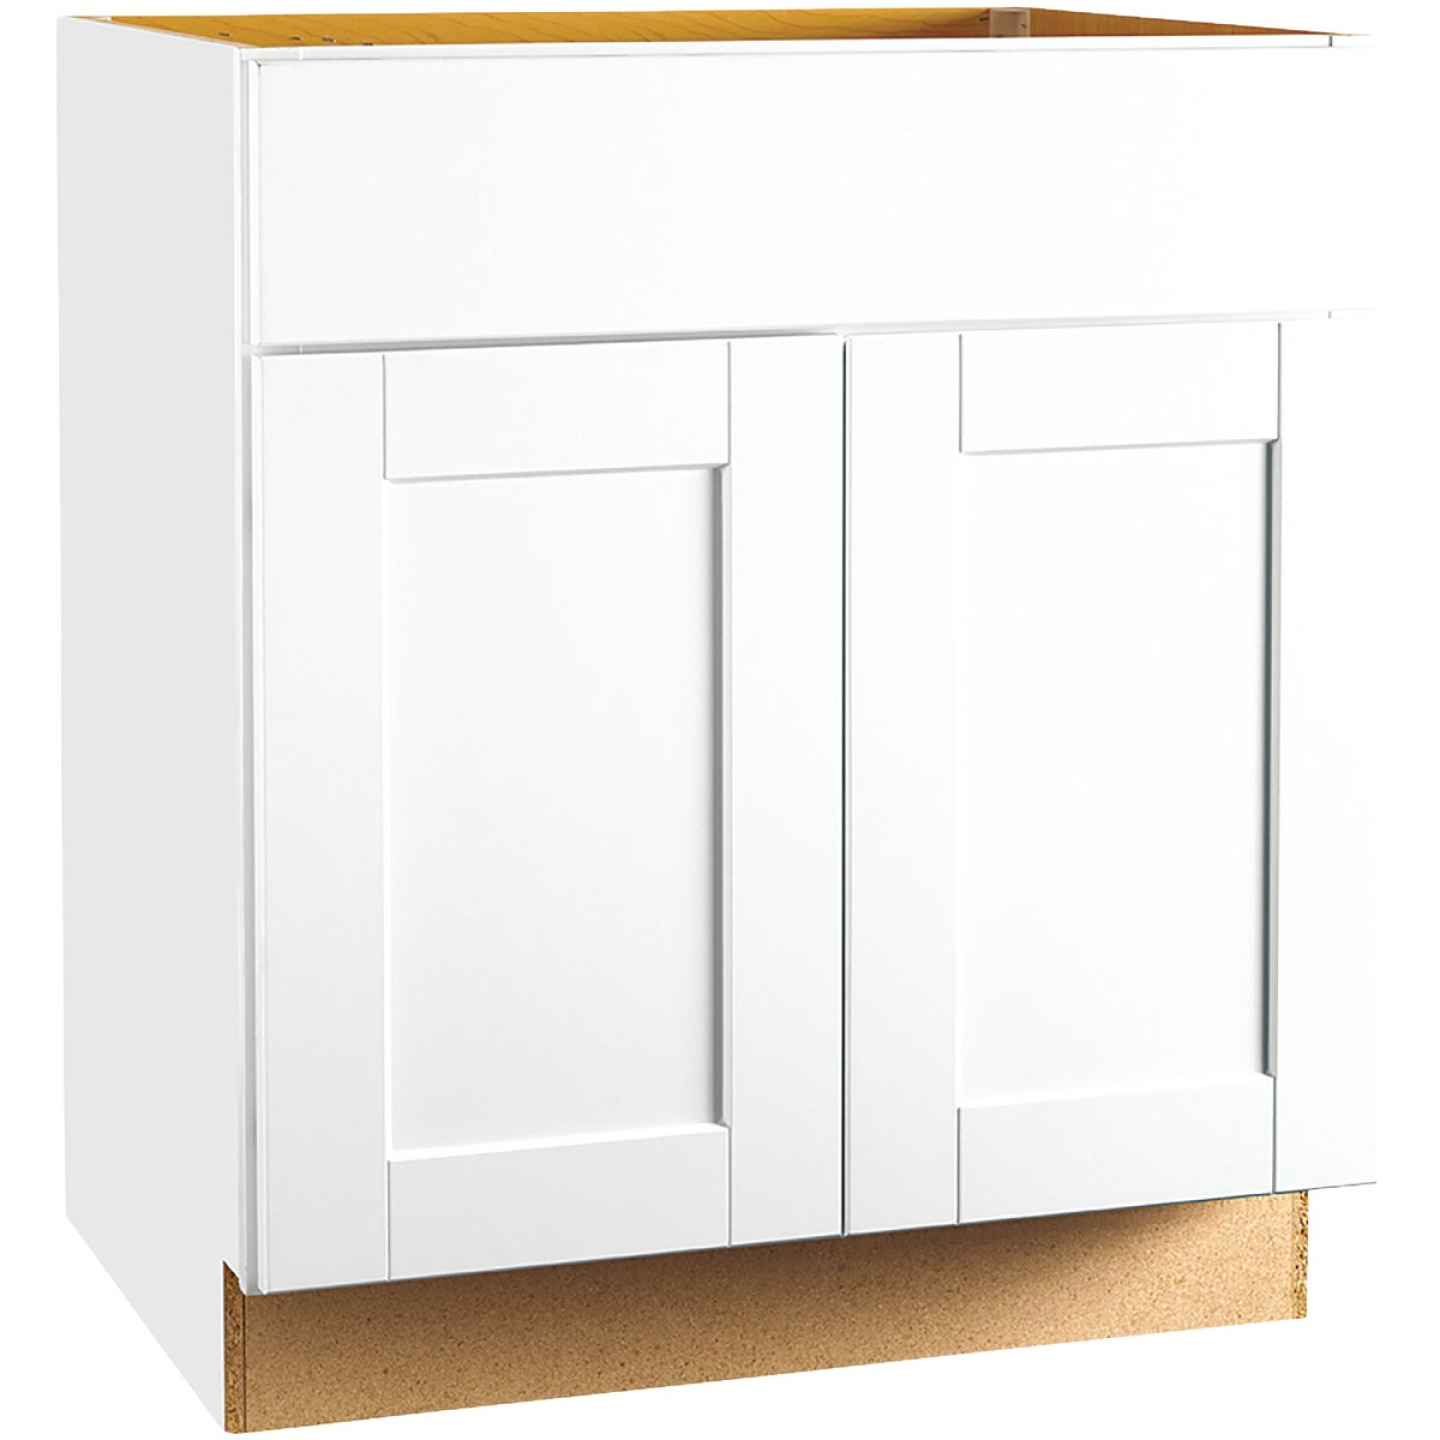 Continental Cabinets Andover Shaker 30 In. W x 34-1/2 In. H x 24 In. D White Thermofoil Sink Base Kitchen Cabinet Image 1